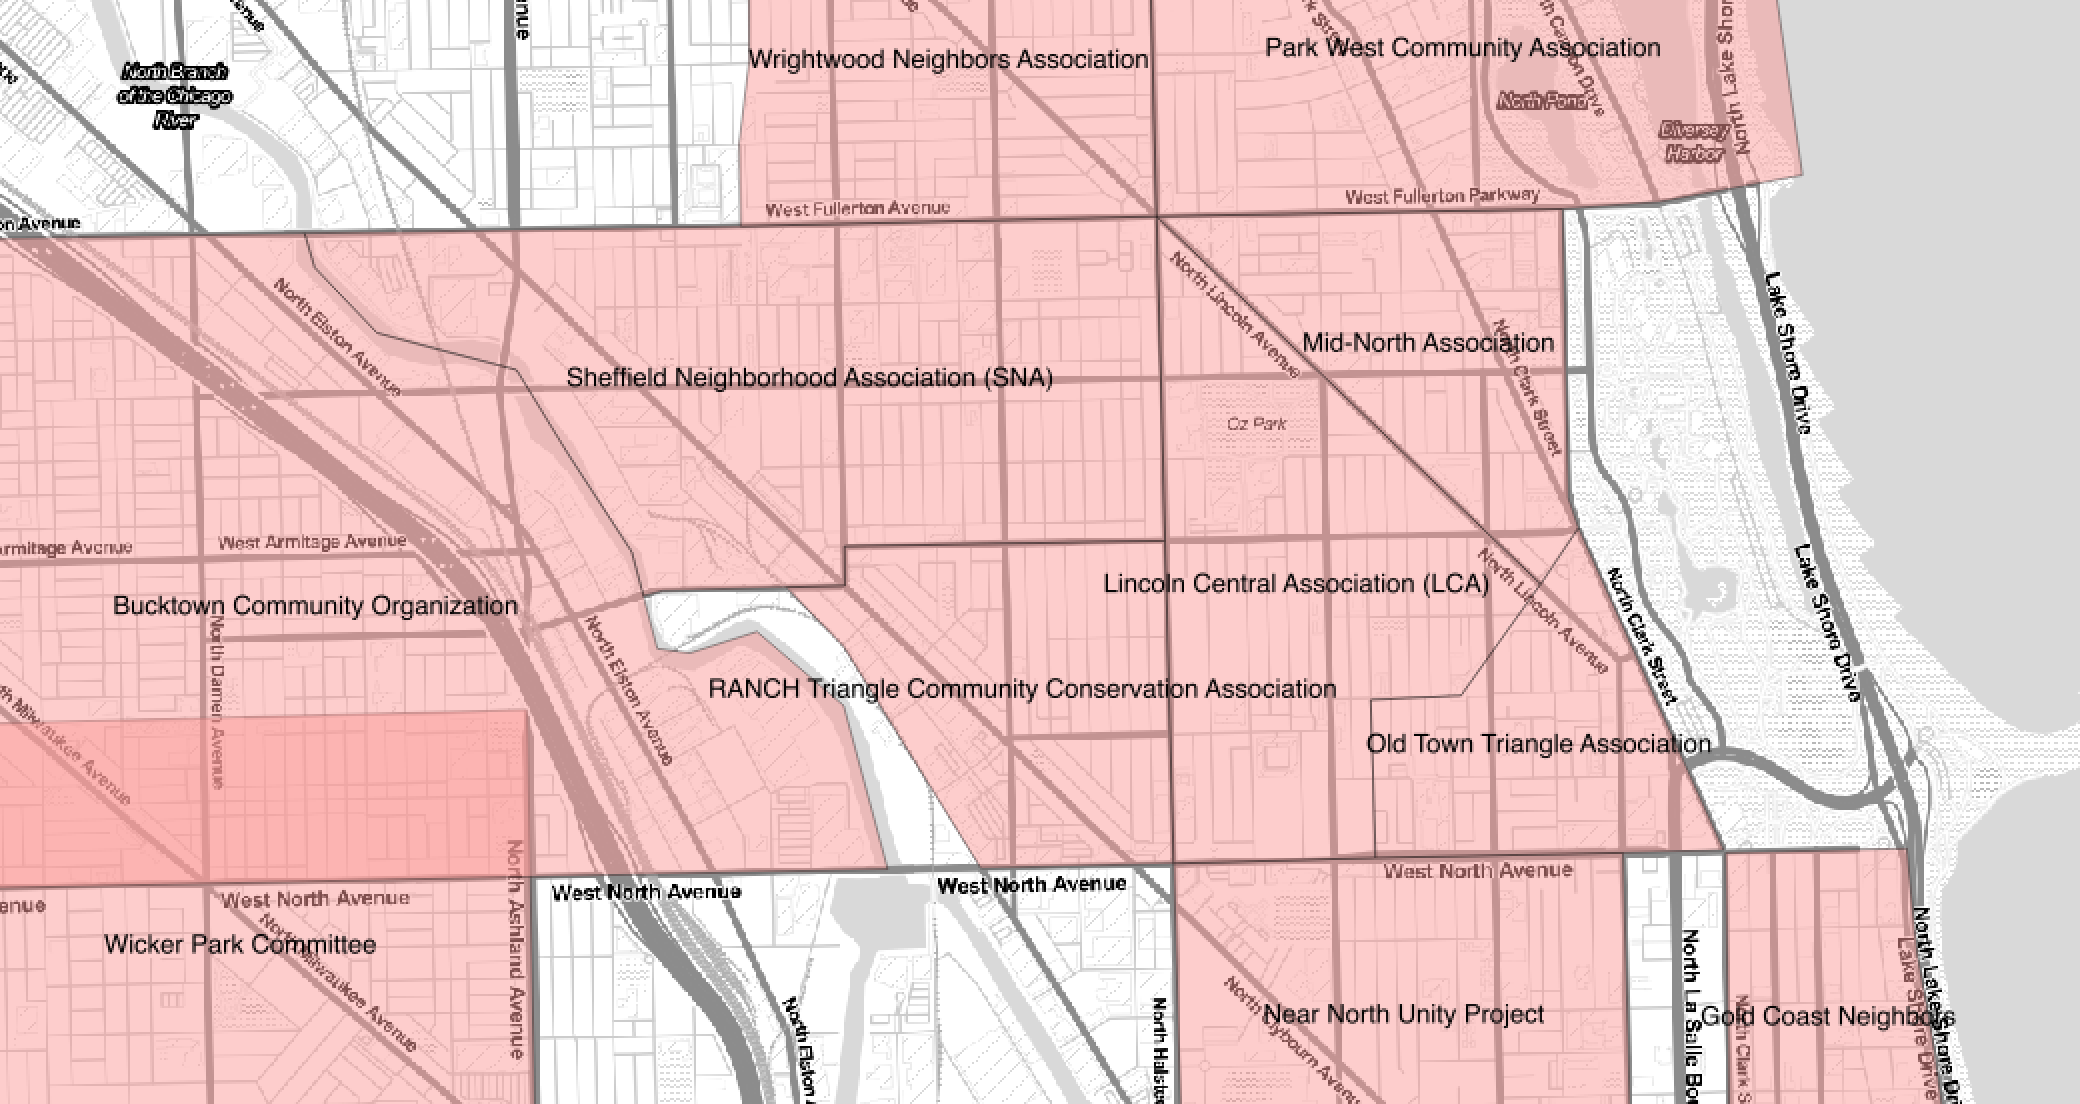 Screenshot of Chicago neighborhood groups map